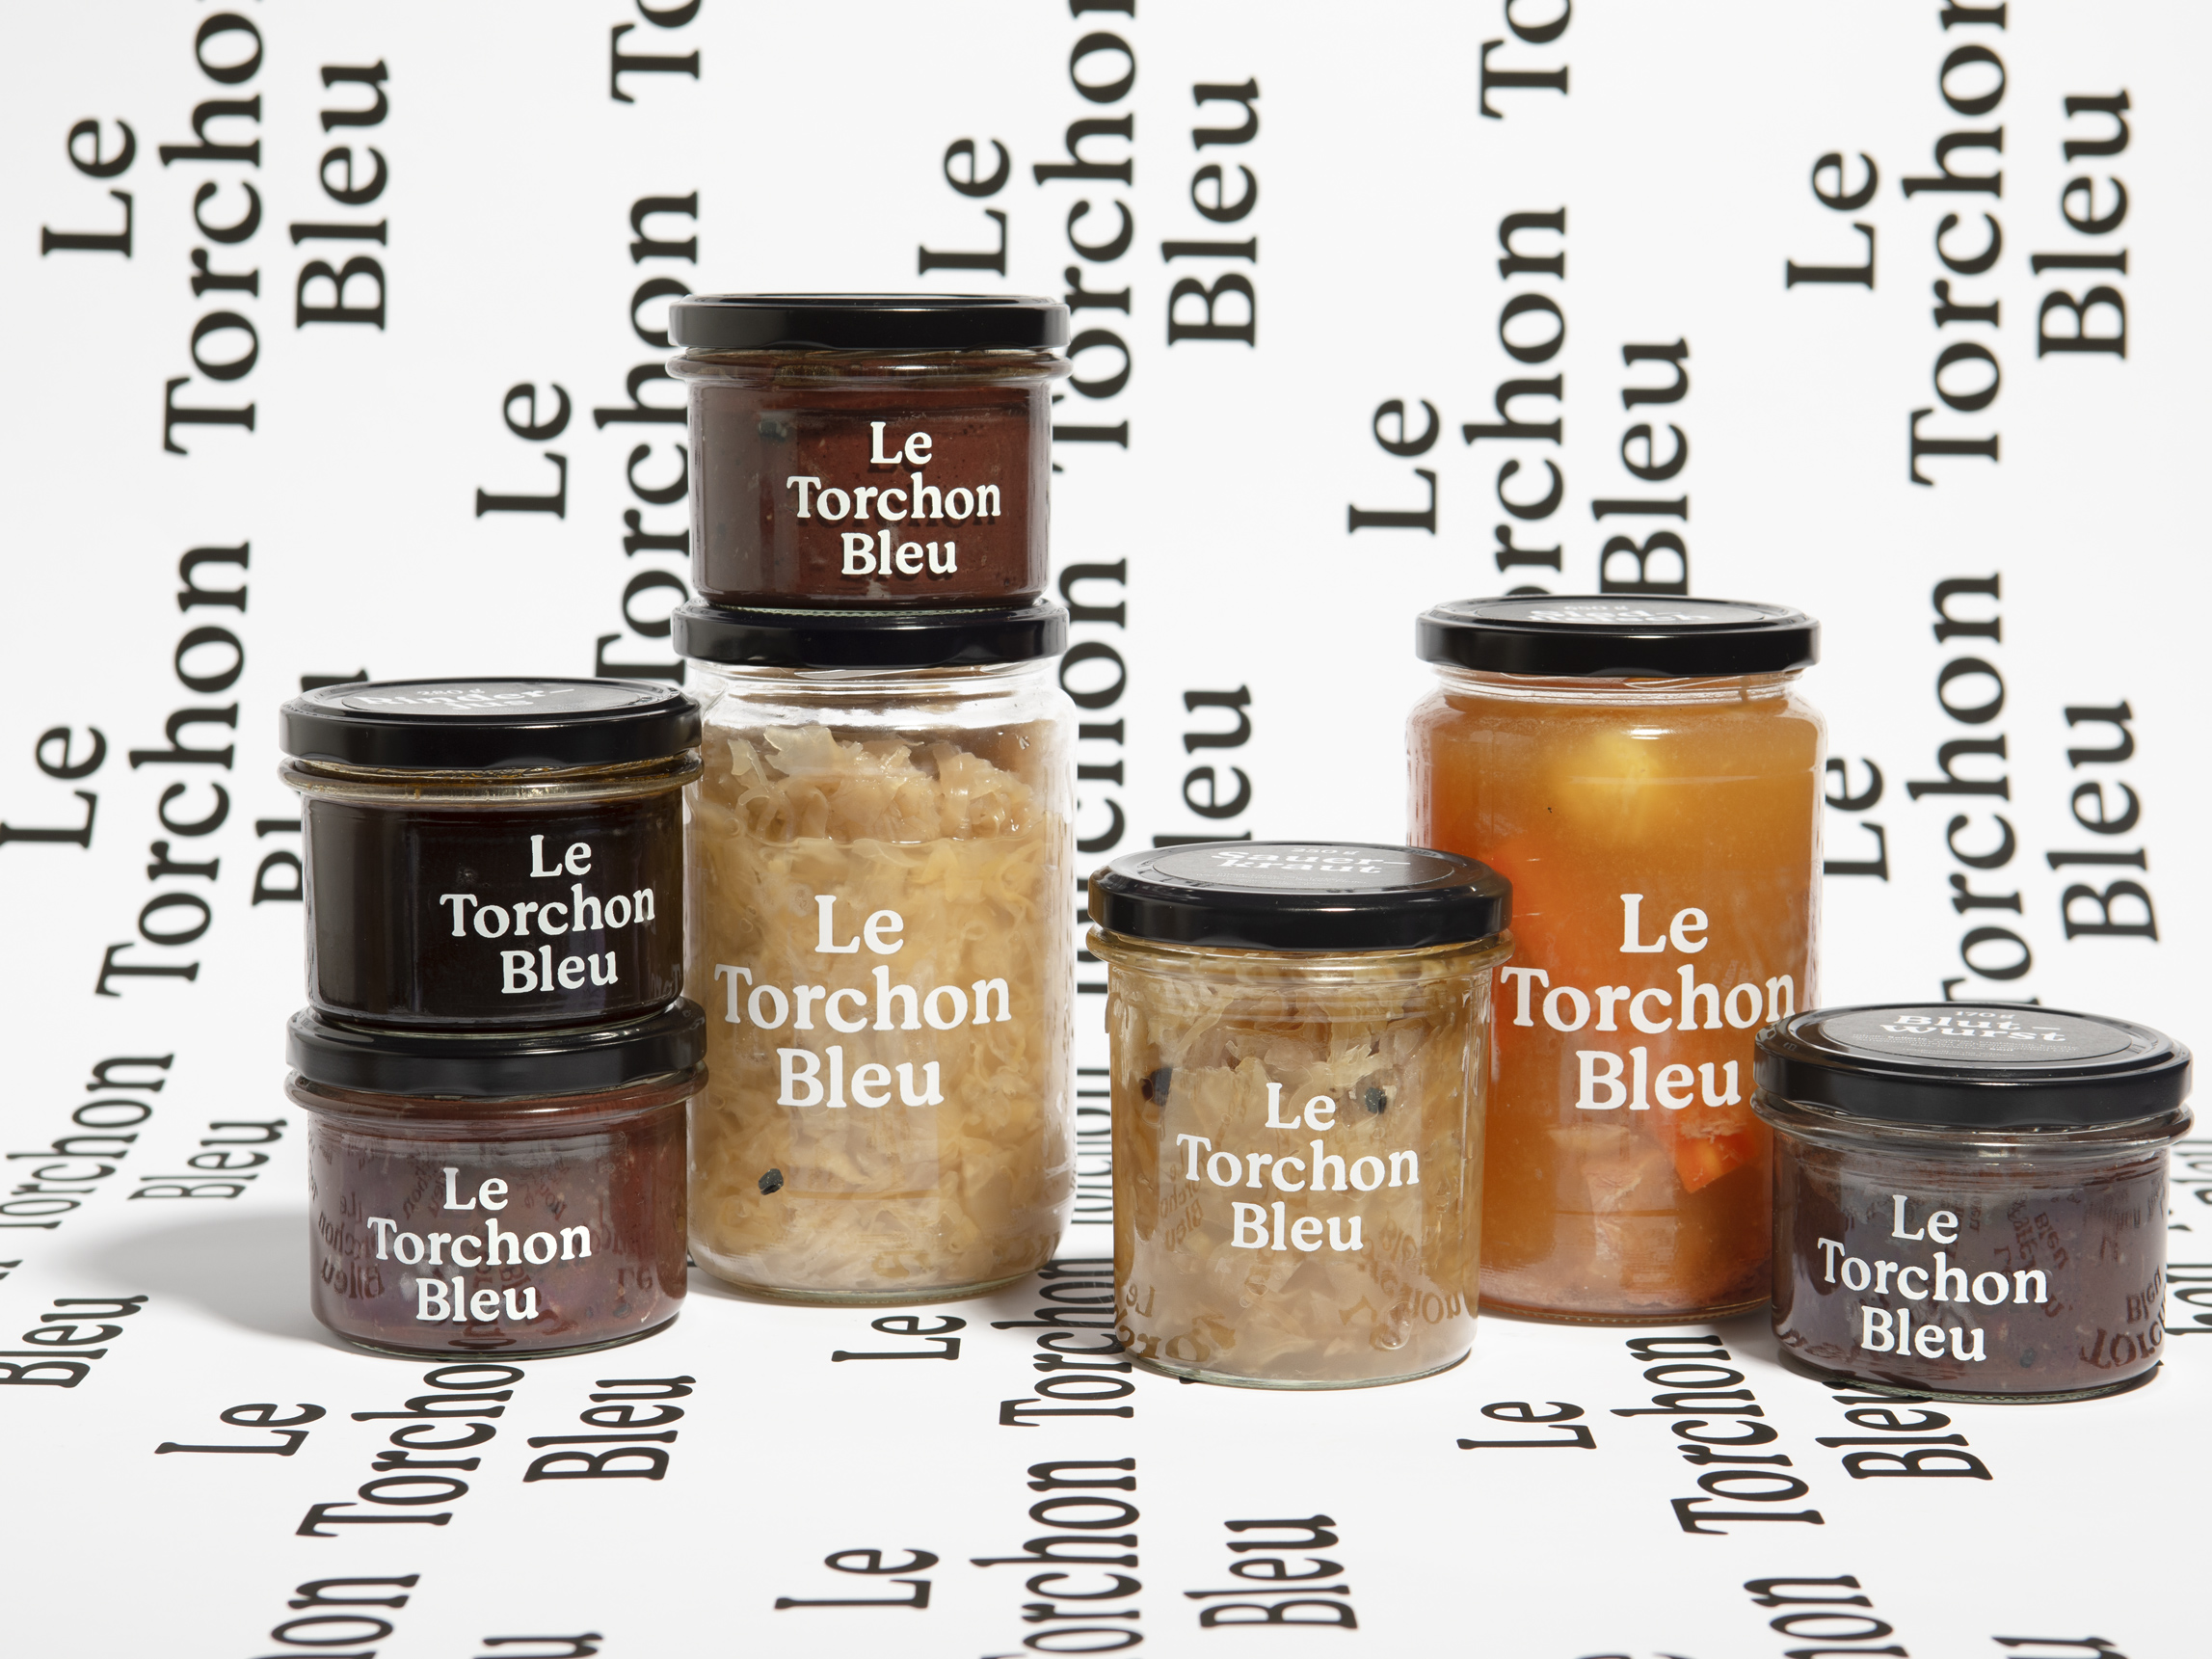 Products Branding Packagging Le Torchon Bleu, Nulleins Bern